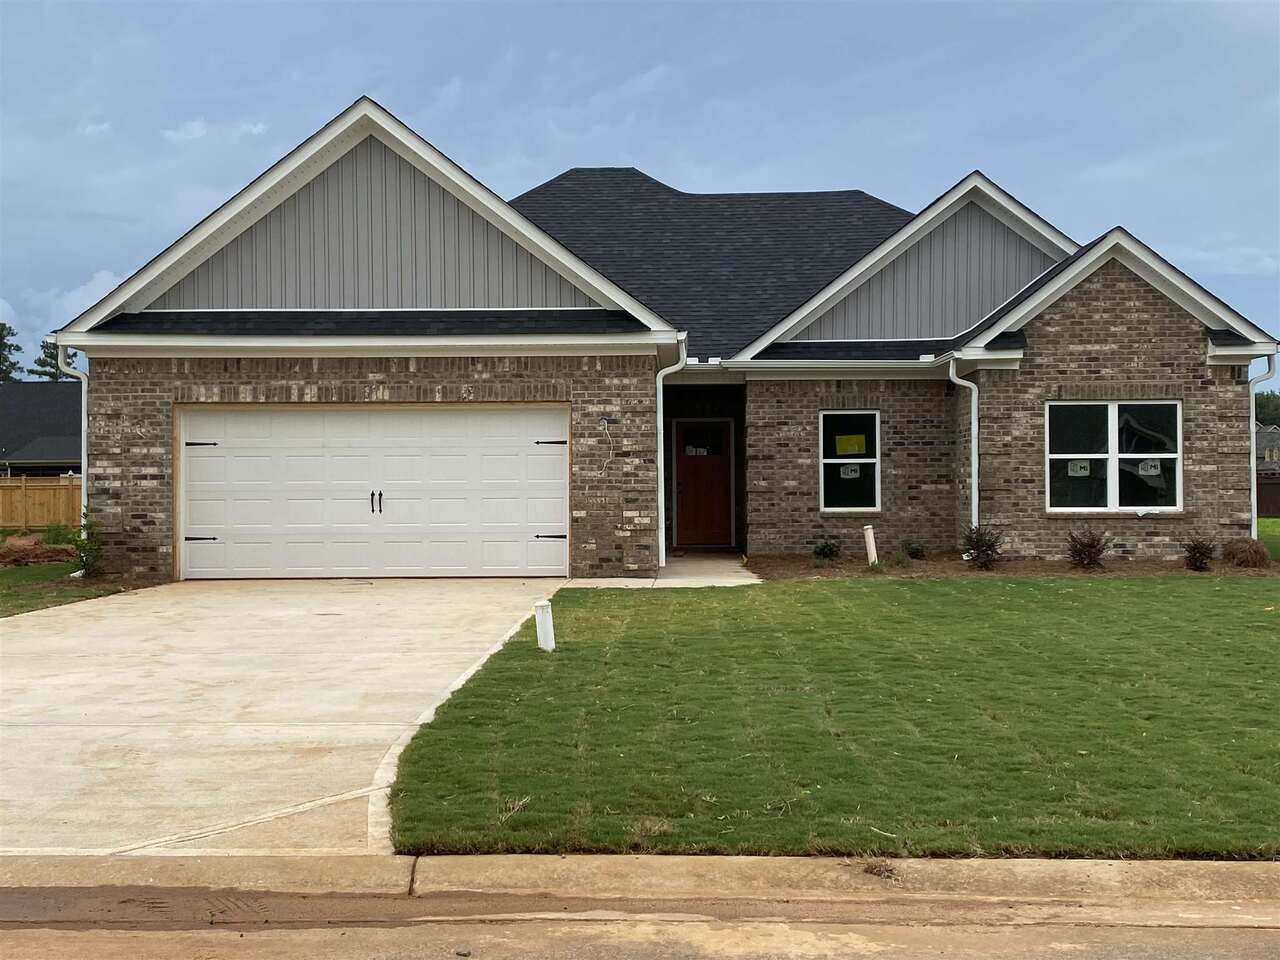 1032 Marion Oaks Dr, Macon, GA 31216 - MLS#: 8865587